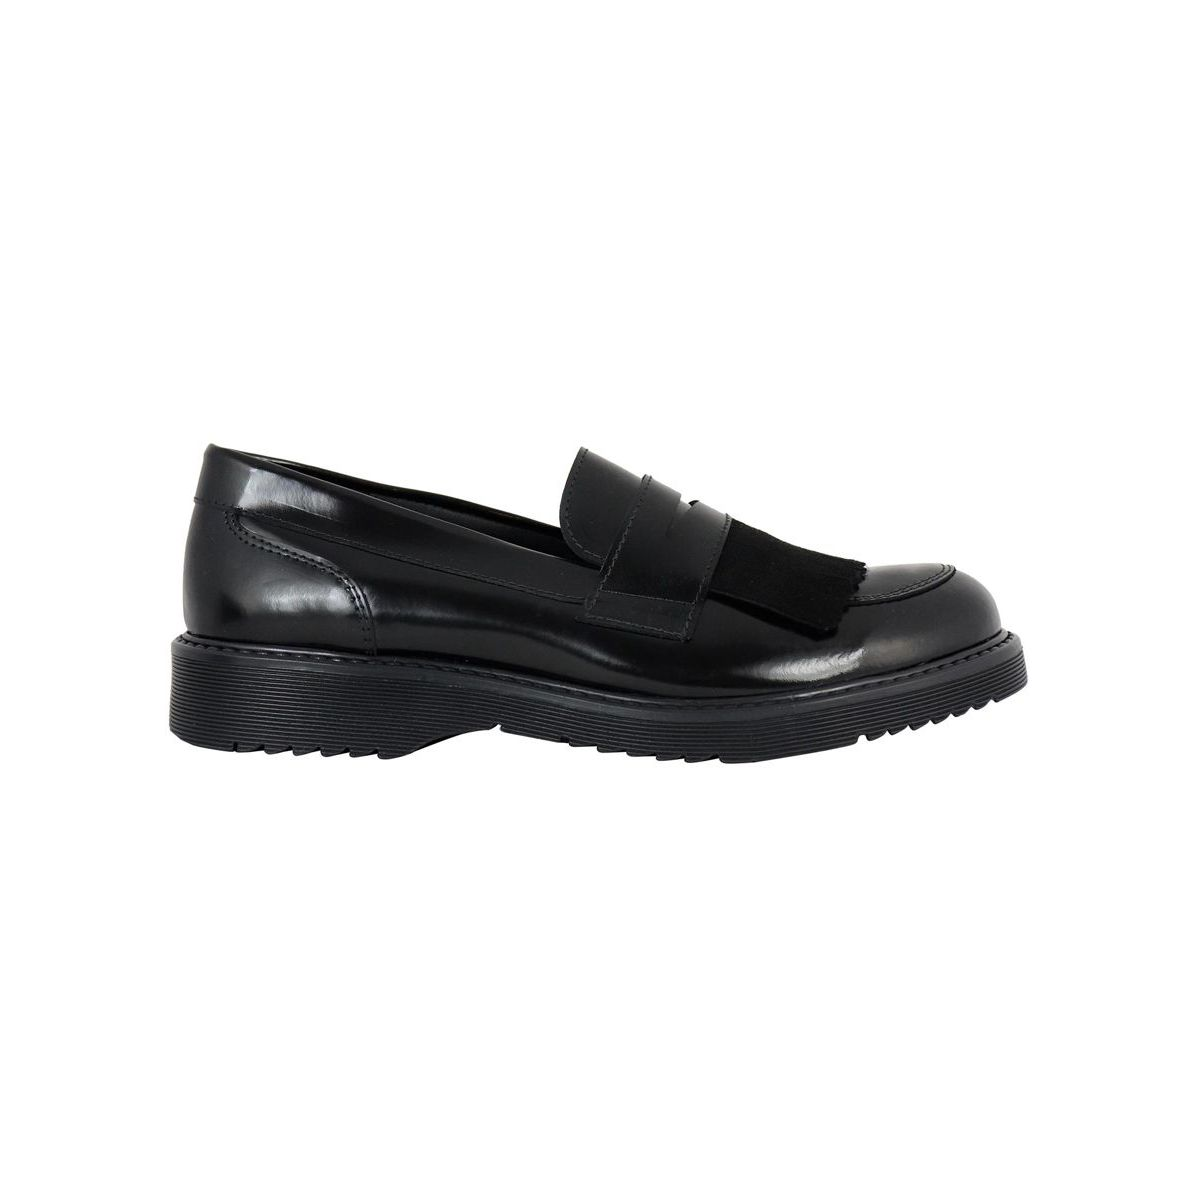 Leather moccasin with fringe detail Black Clarys